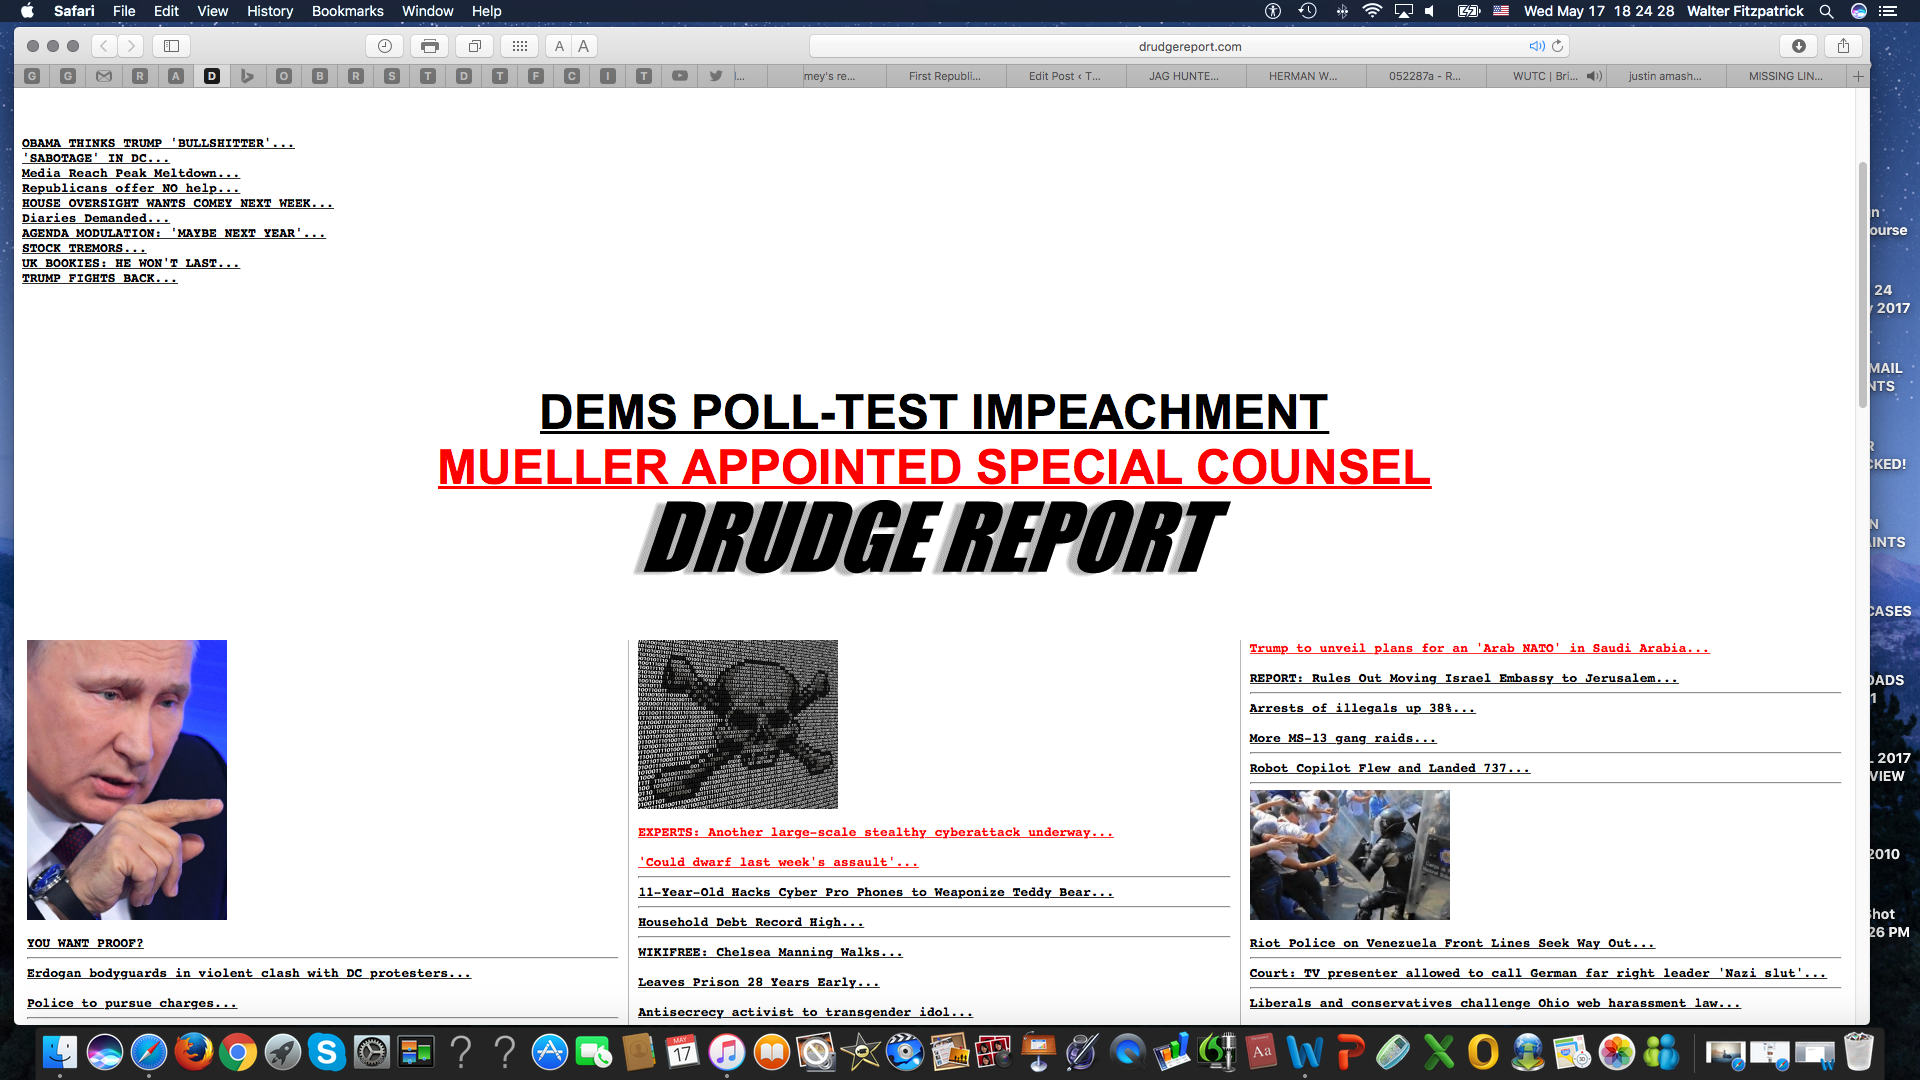 DRUDGE REPORT SCREEN SHOT at 6.24.28 PM